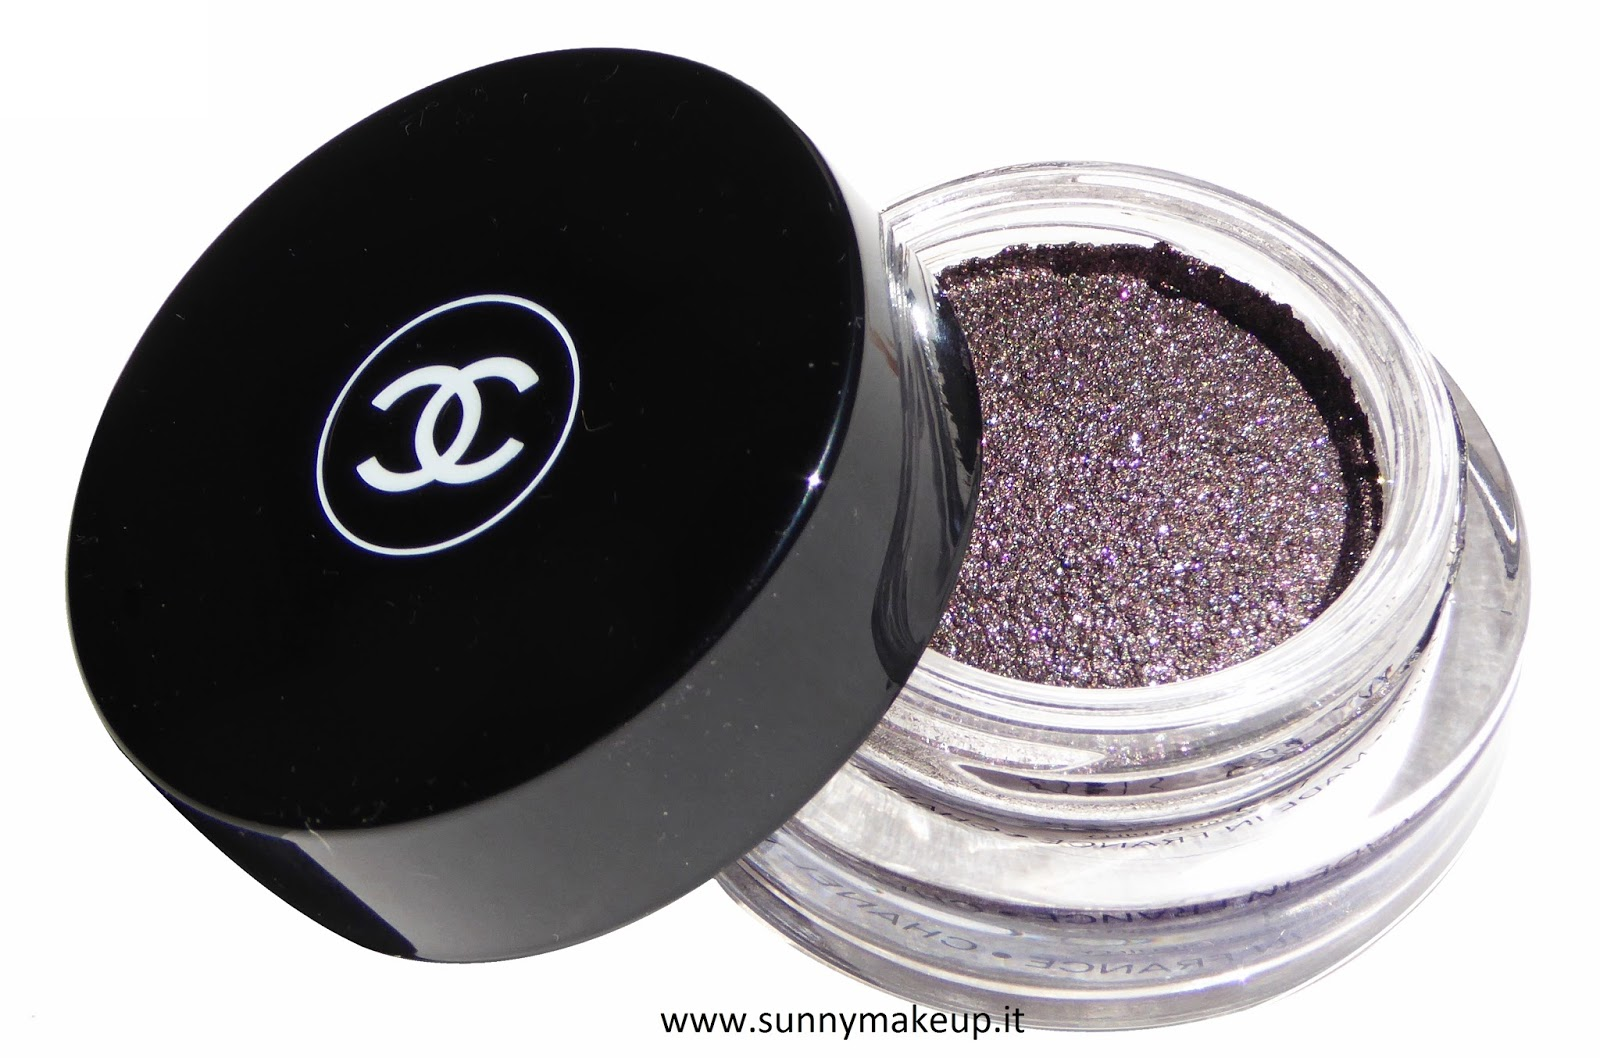 Chanel - Illusion d'Ombre: Swatch e review dell'ombretto 83 Illusoire